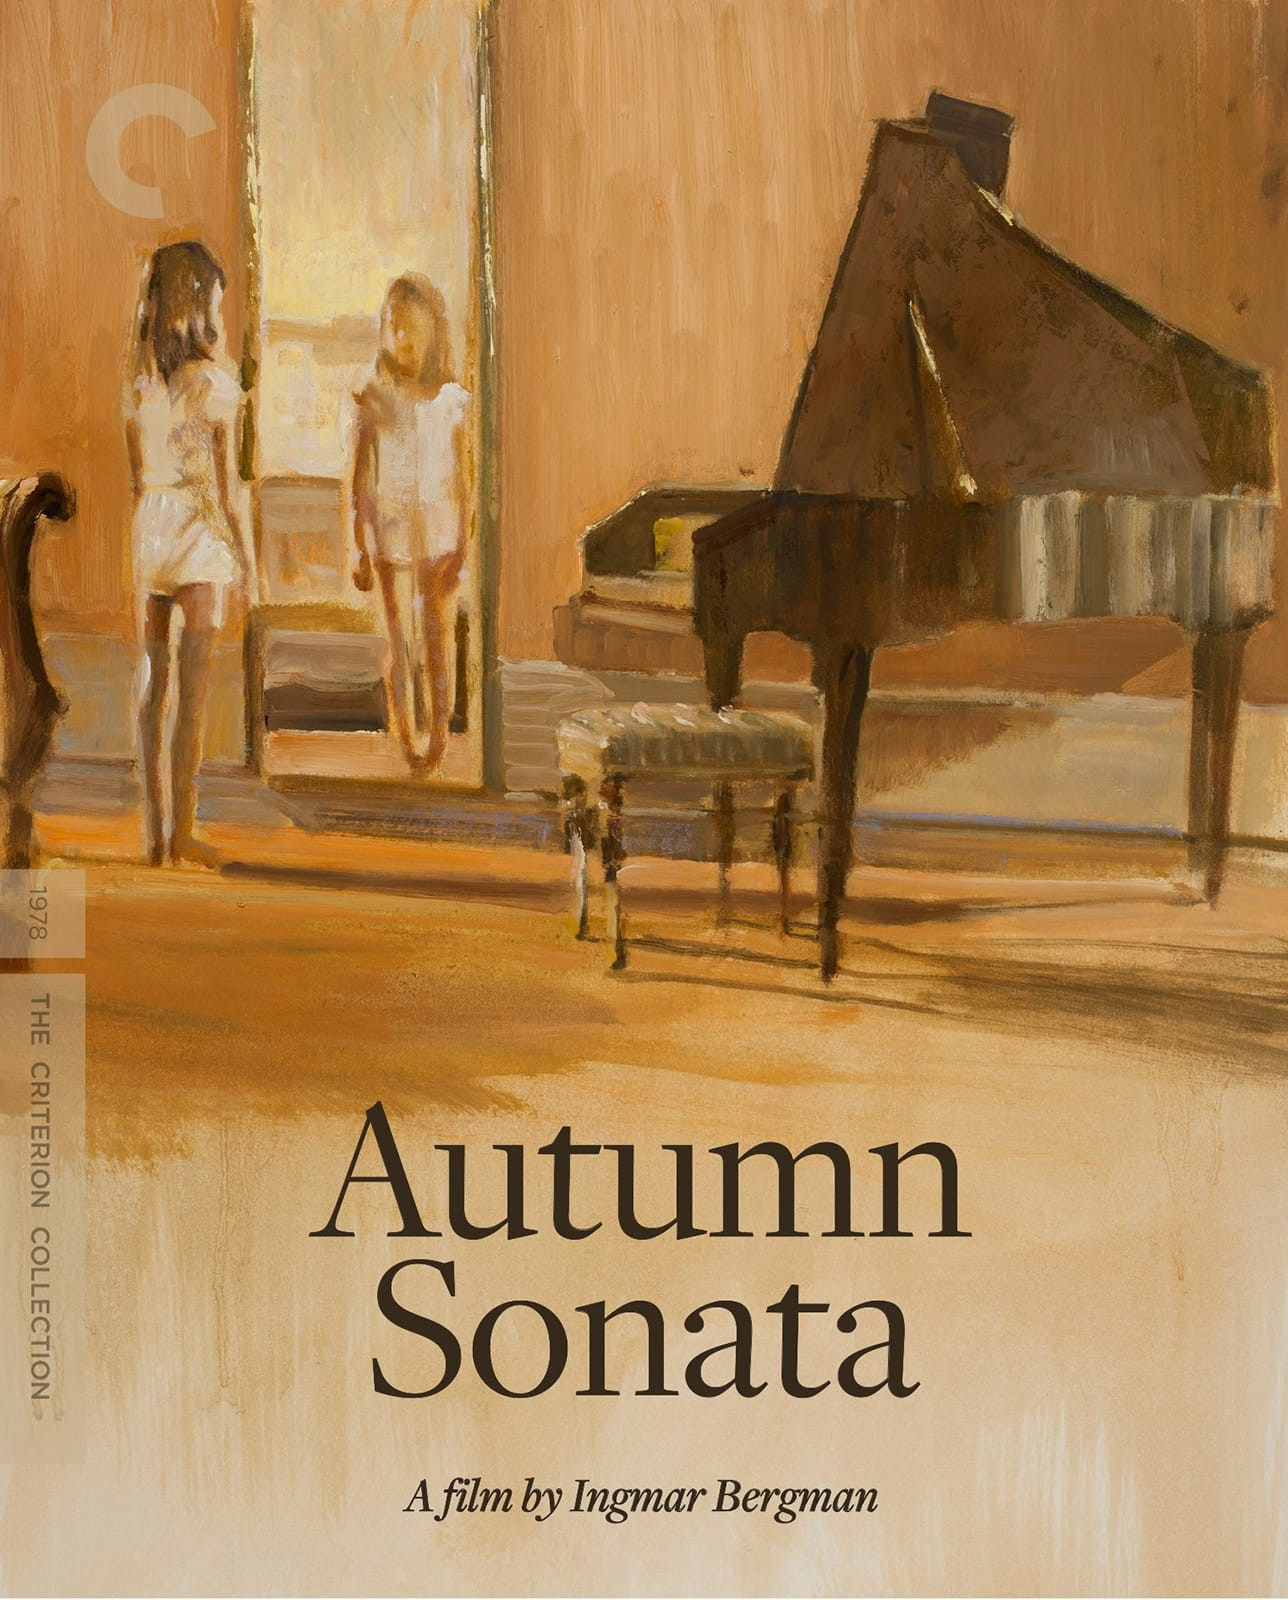 Image result for autumn sonata criterion